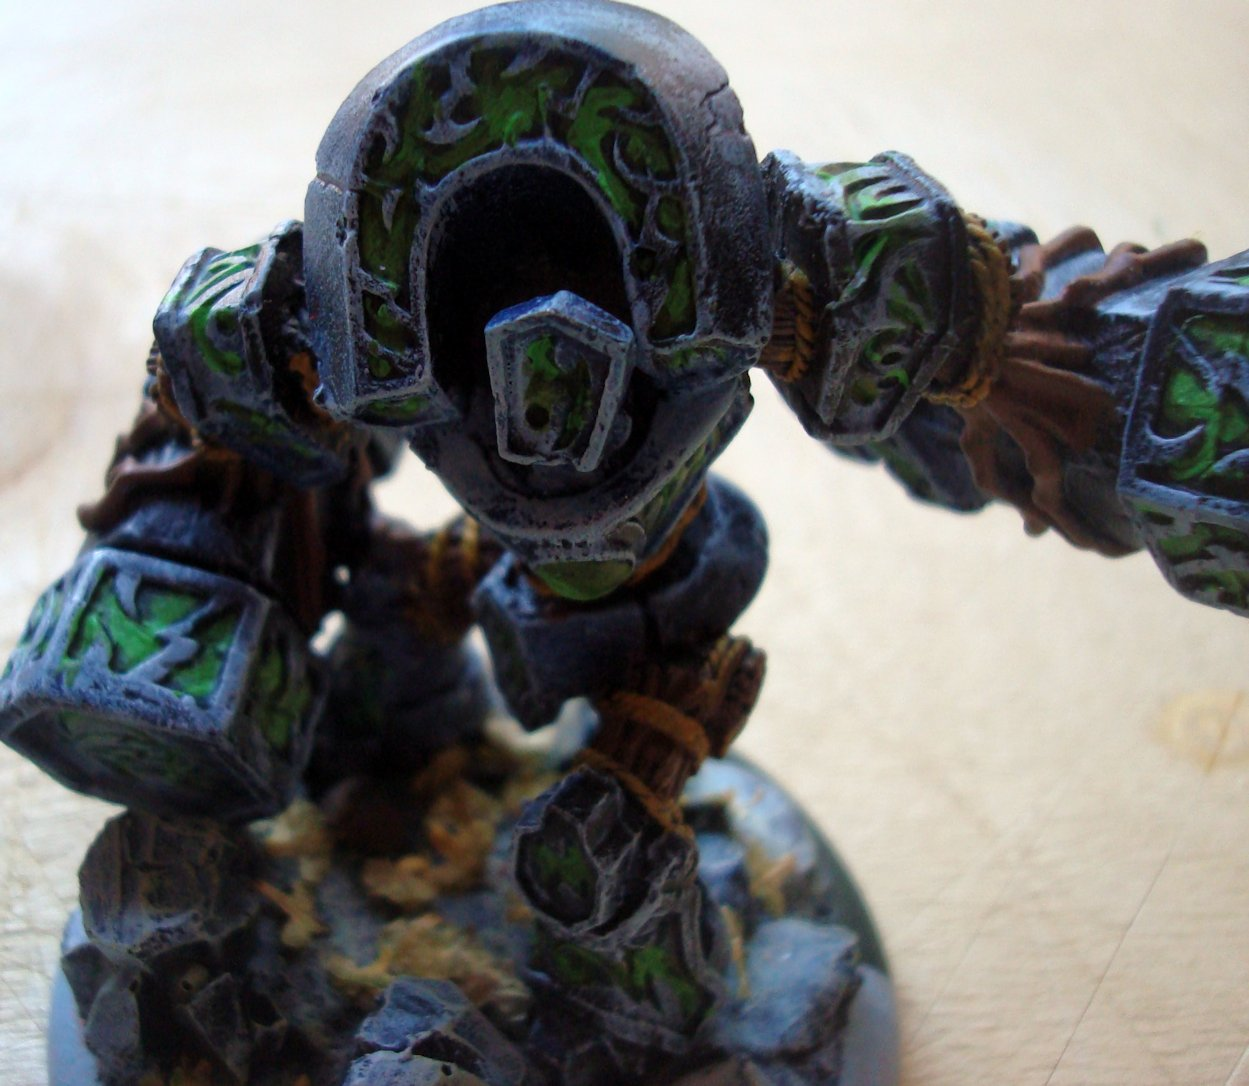 Orboros Wold Guardian detalle